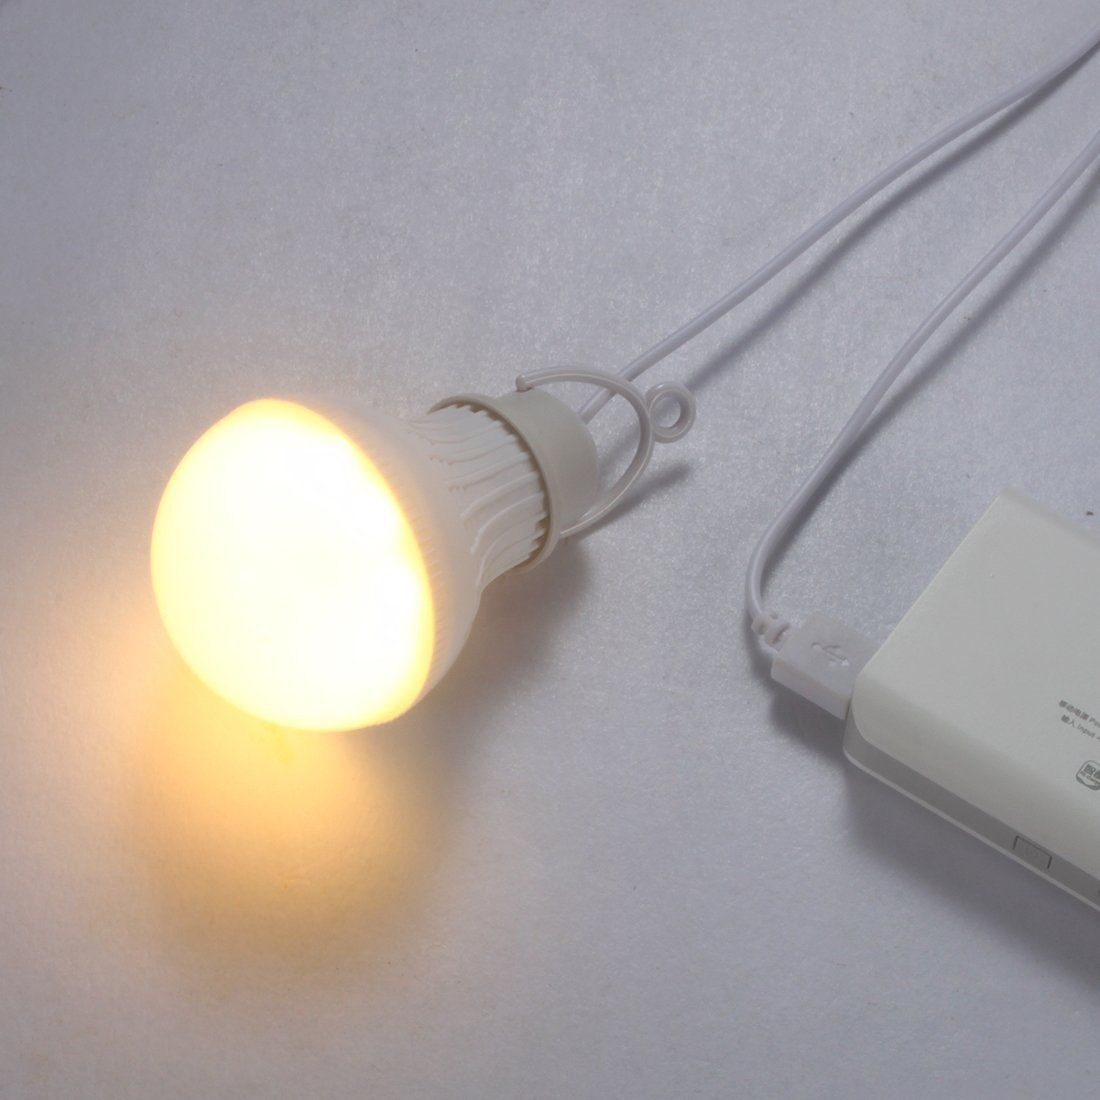 Linght 7w Usb Powered Led Bulb Night Light With Dimmable Switch